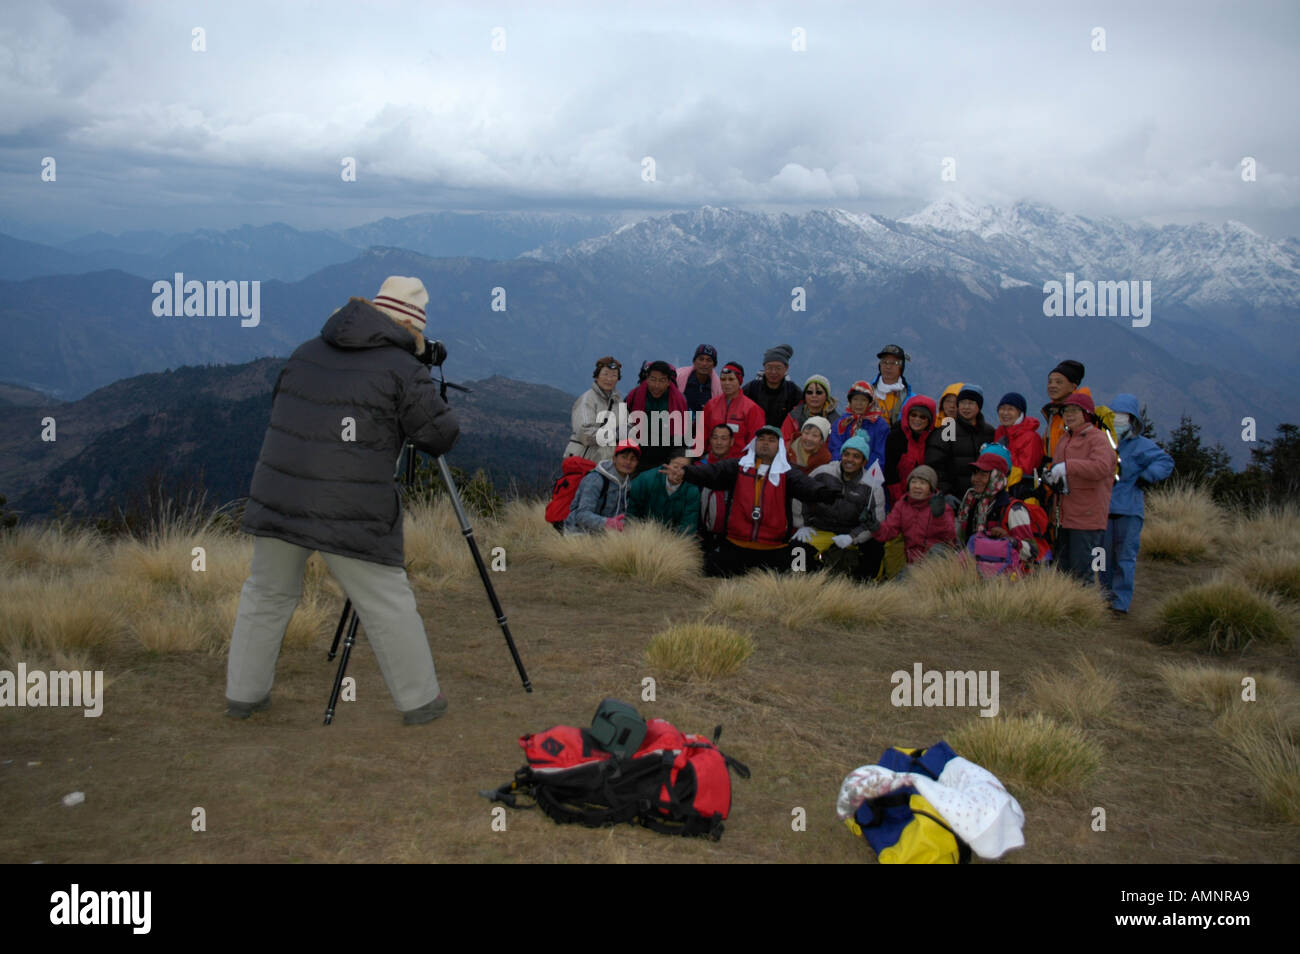 Group of Japanese tourists are beeing photographed on the summit of Poon Hill Annapurna Region Nepal - Stock Image